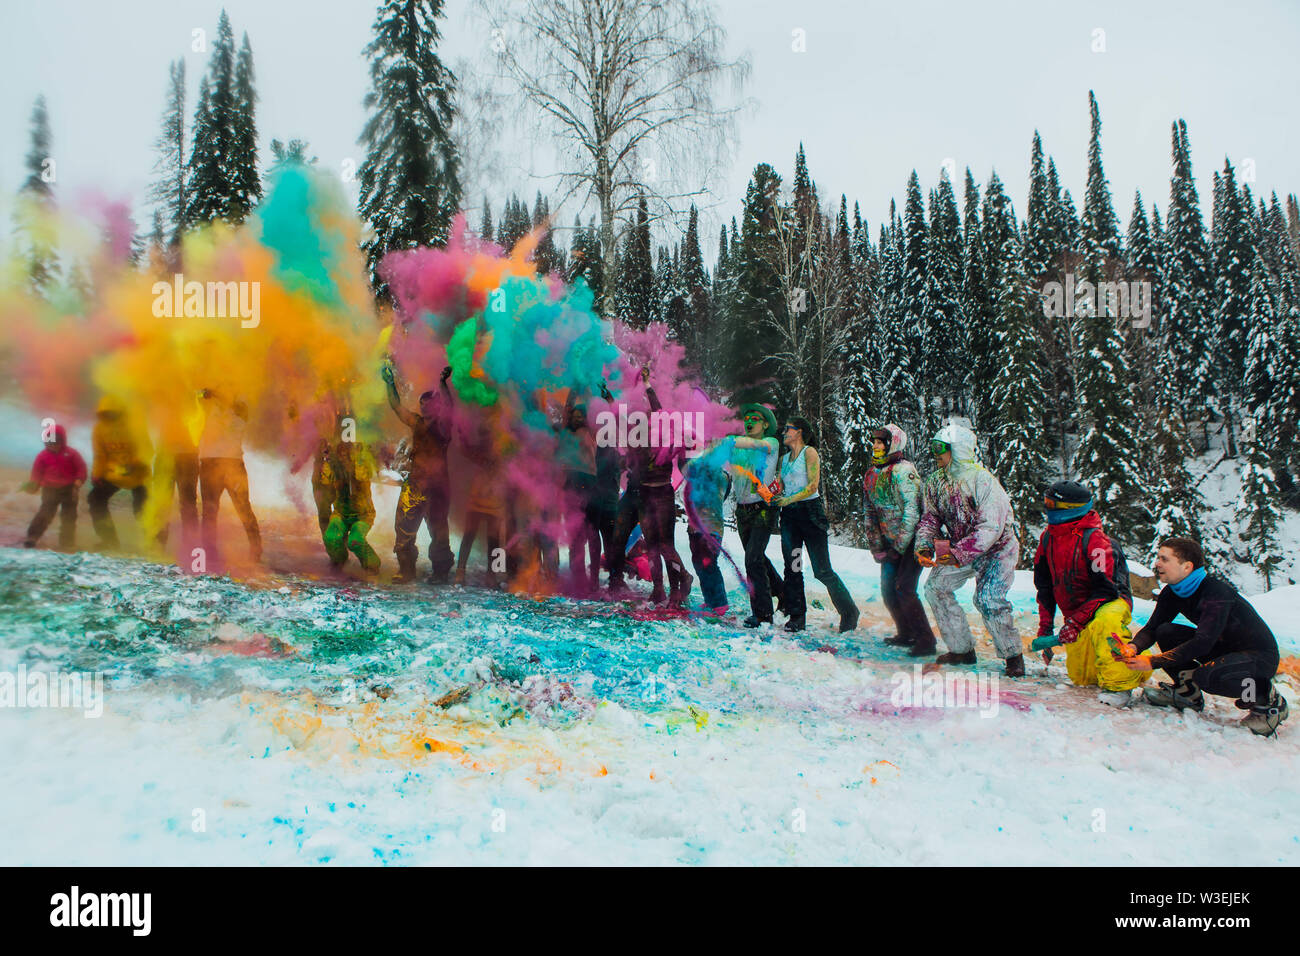 Sheregesh, Kemerovo region, Russia - April 06, 2019: Grelka Fest is a sports and entertainment activity for ski and snowboard riders in bikini. A grou - Stock Image